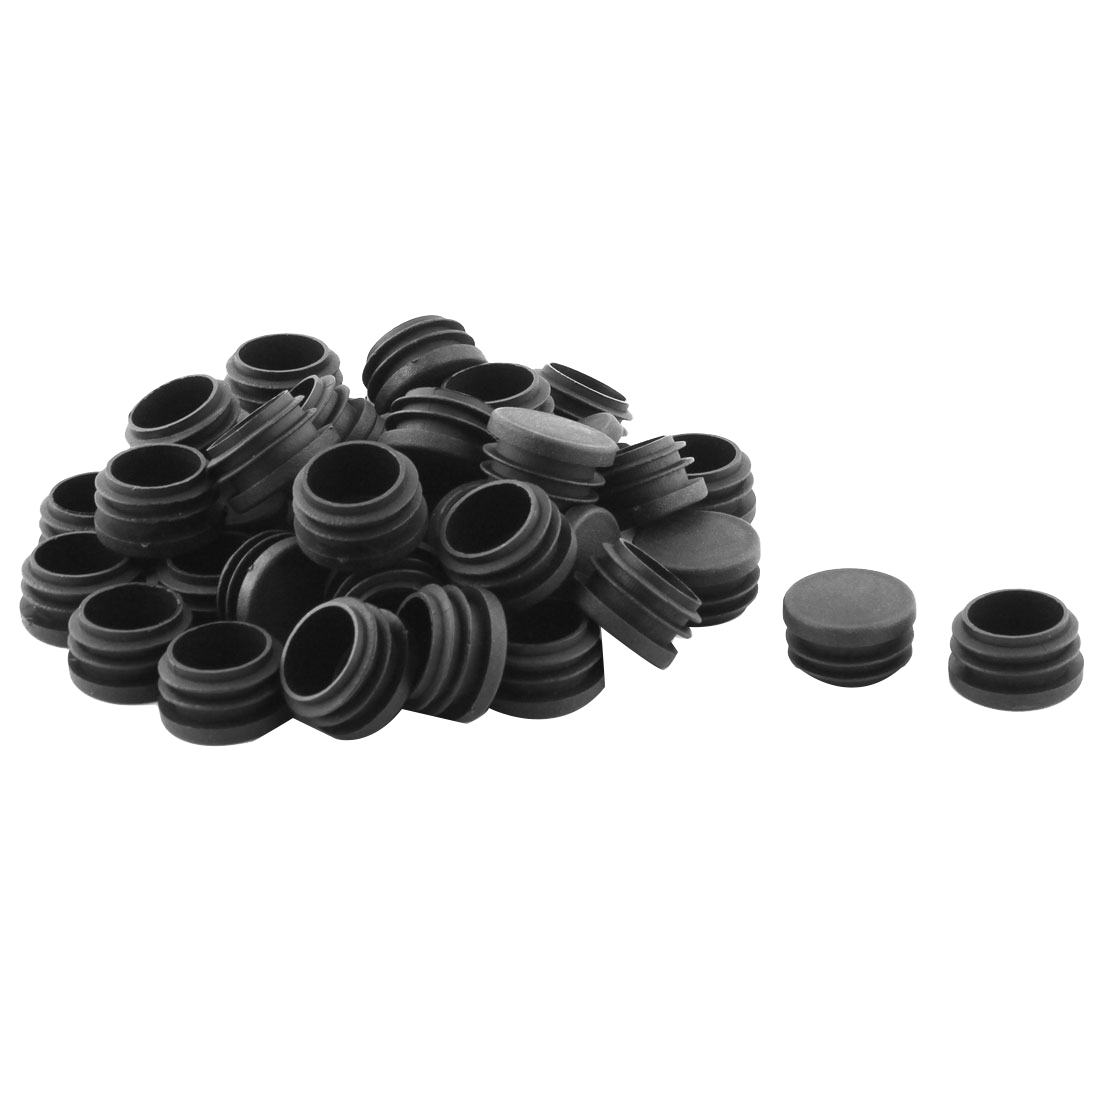 Desk Chair Feet Round Shaped Tube Pipe Inserts End Caps Covers 40 PCS - image 2 of 2